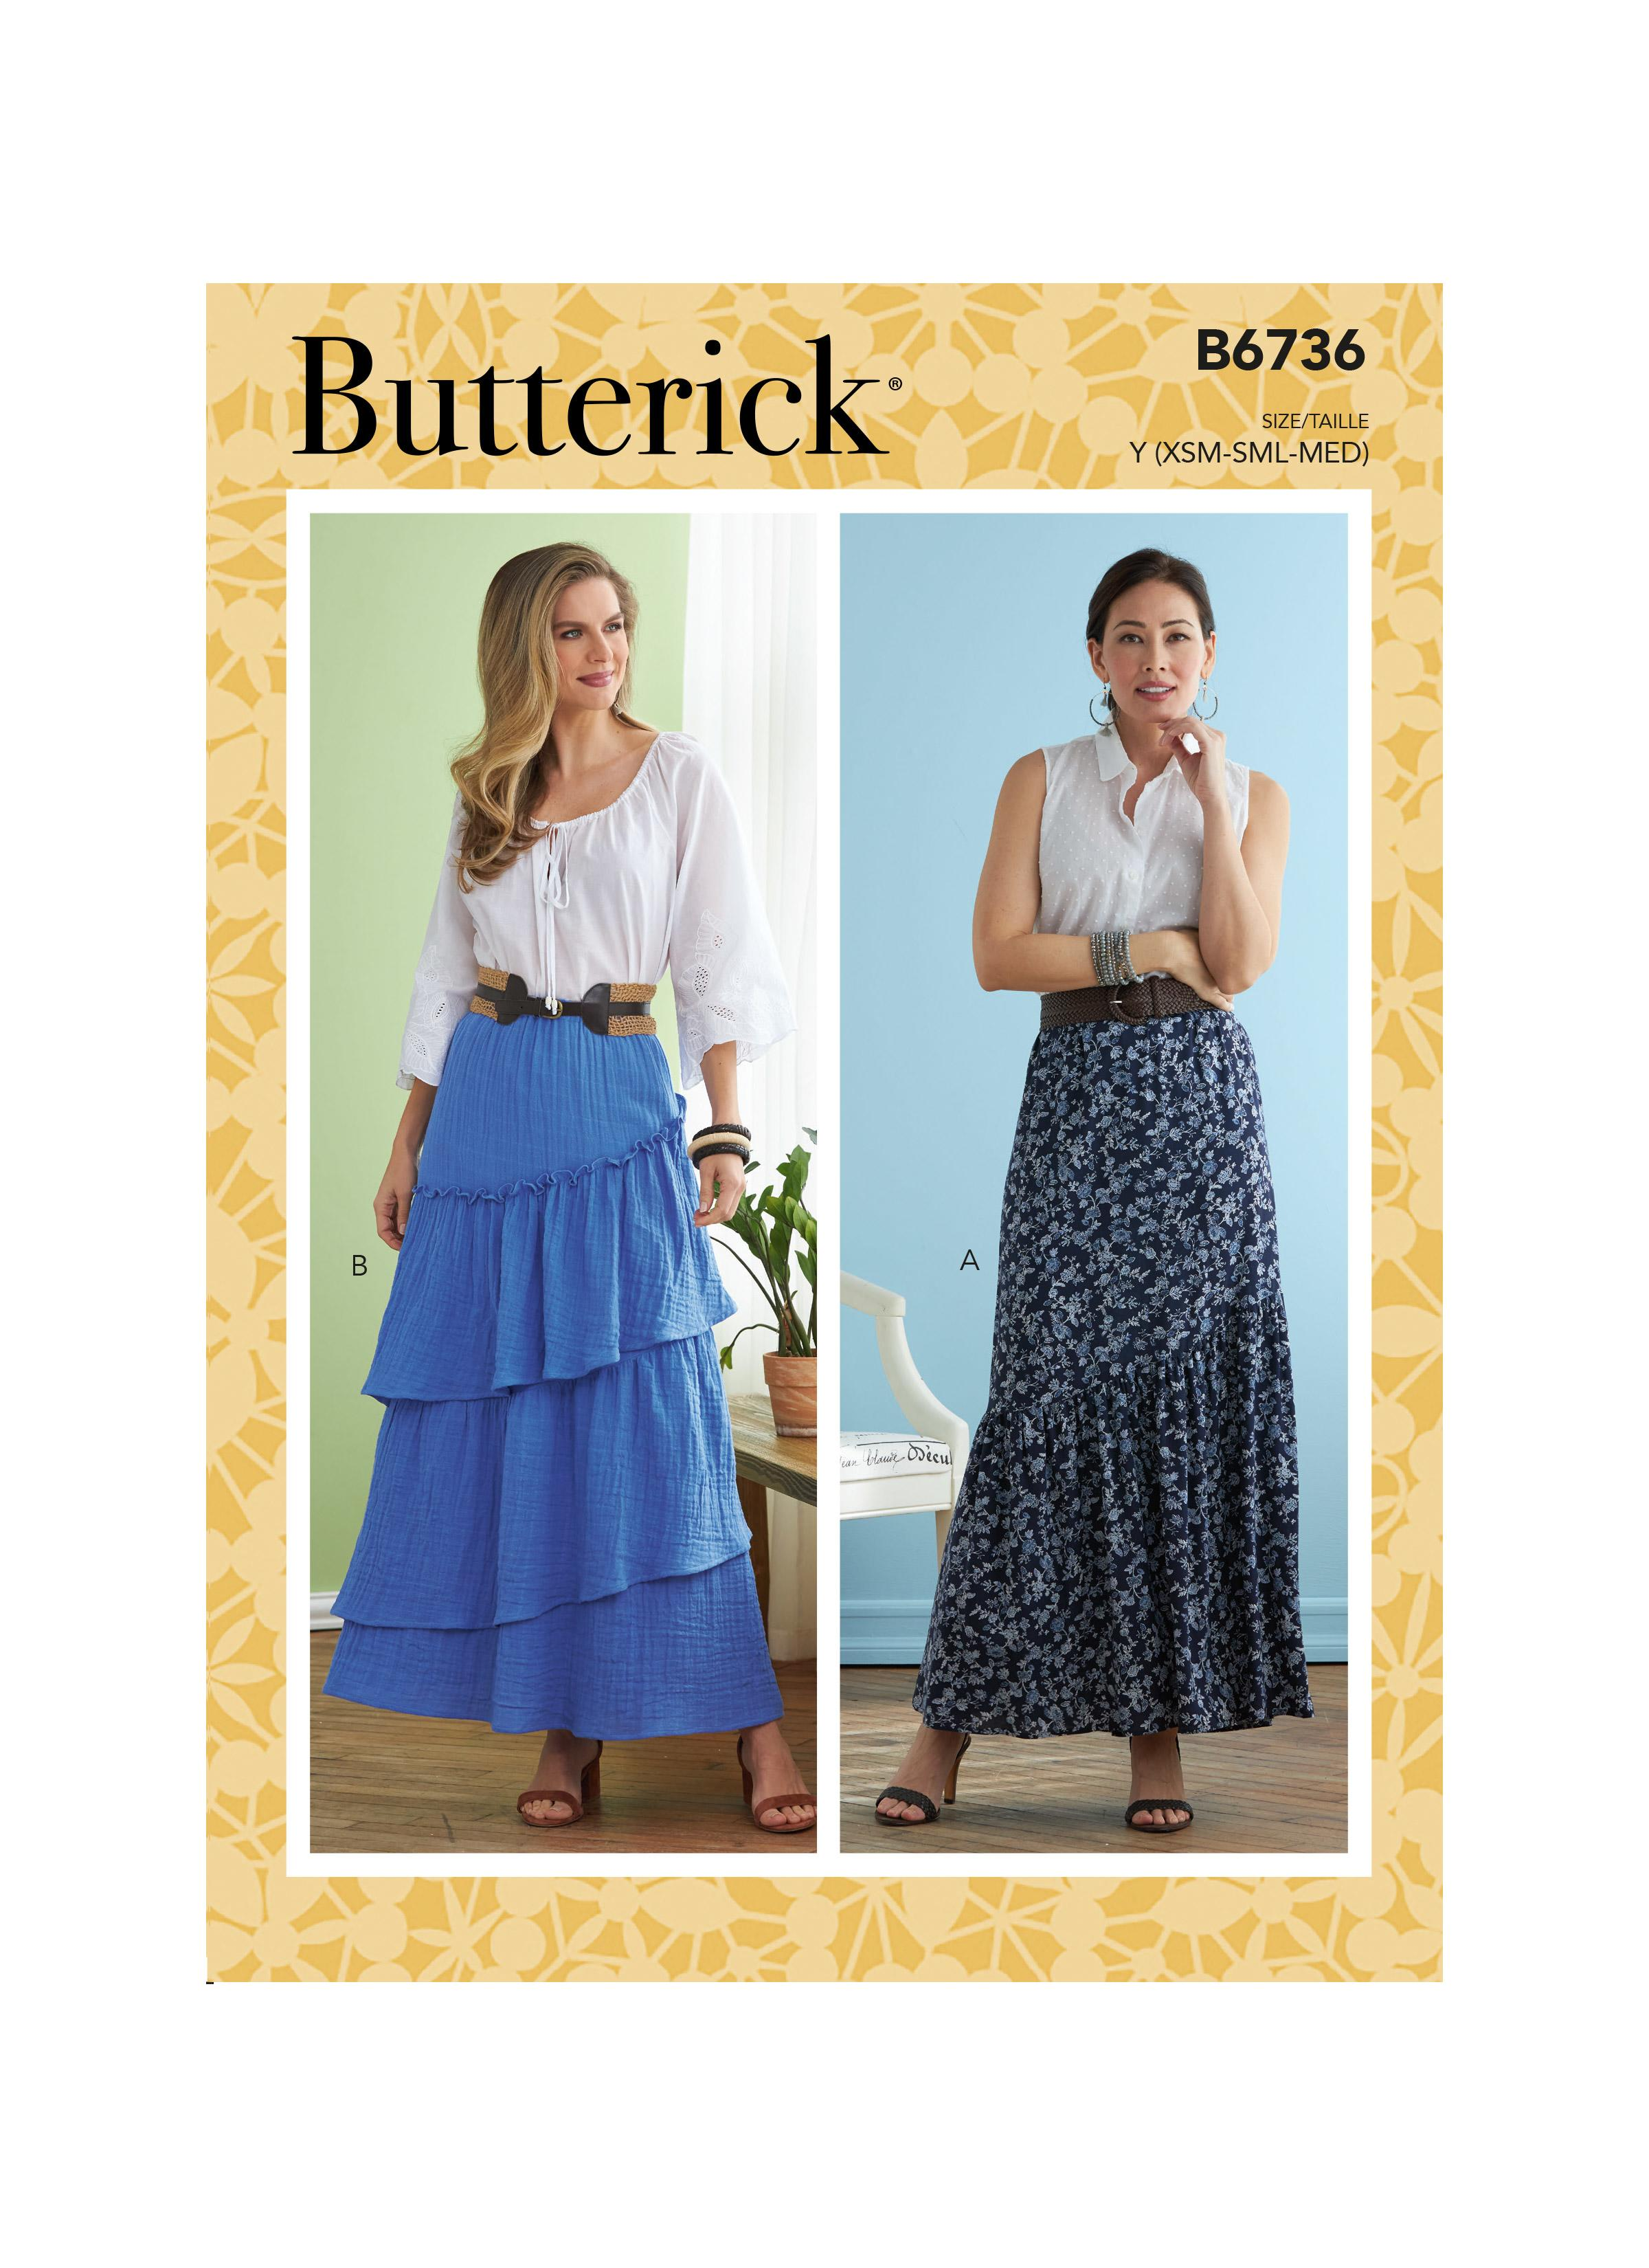 Butterick B6736 Misses' Skirts